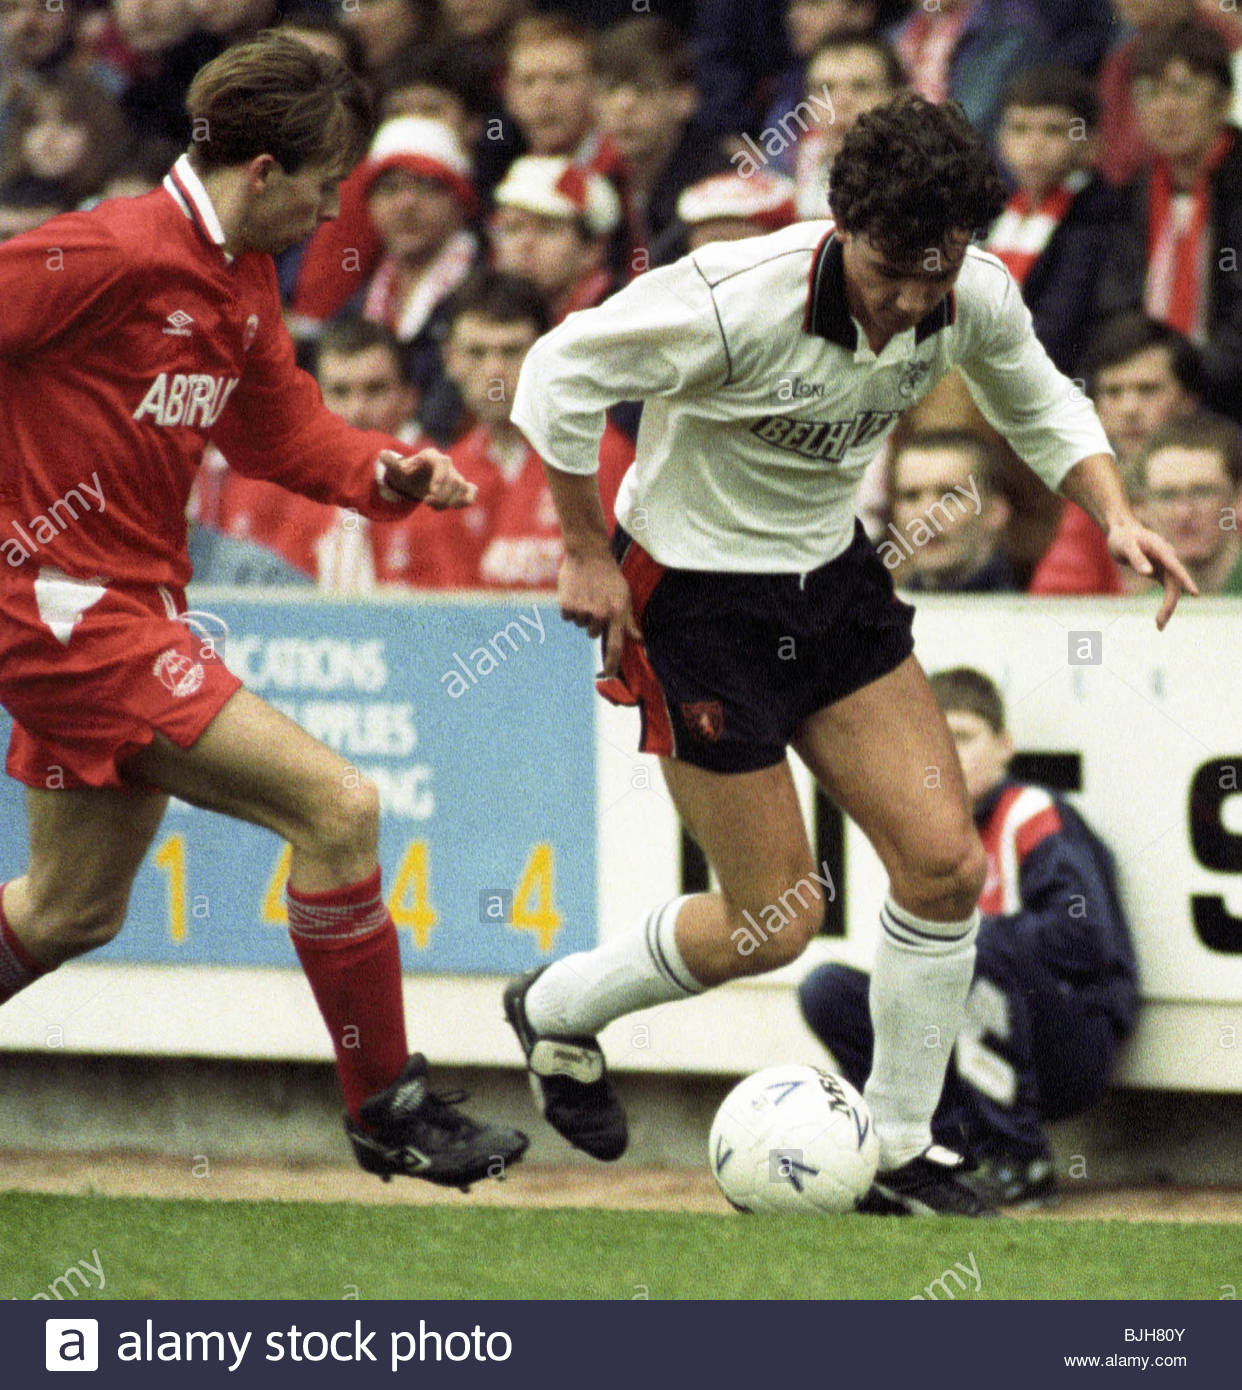 07/02/93 TENNENT'S SCOTTISH CUP ABERDEEN v DUNDEE UTD (2-0) PITTODRIE - ABERDEEN Stephen Wright (left) closes - Stock Image